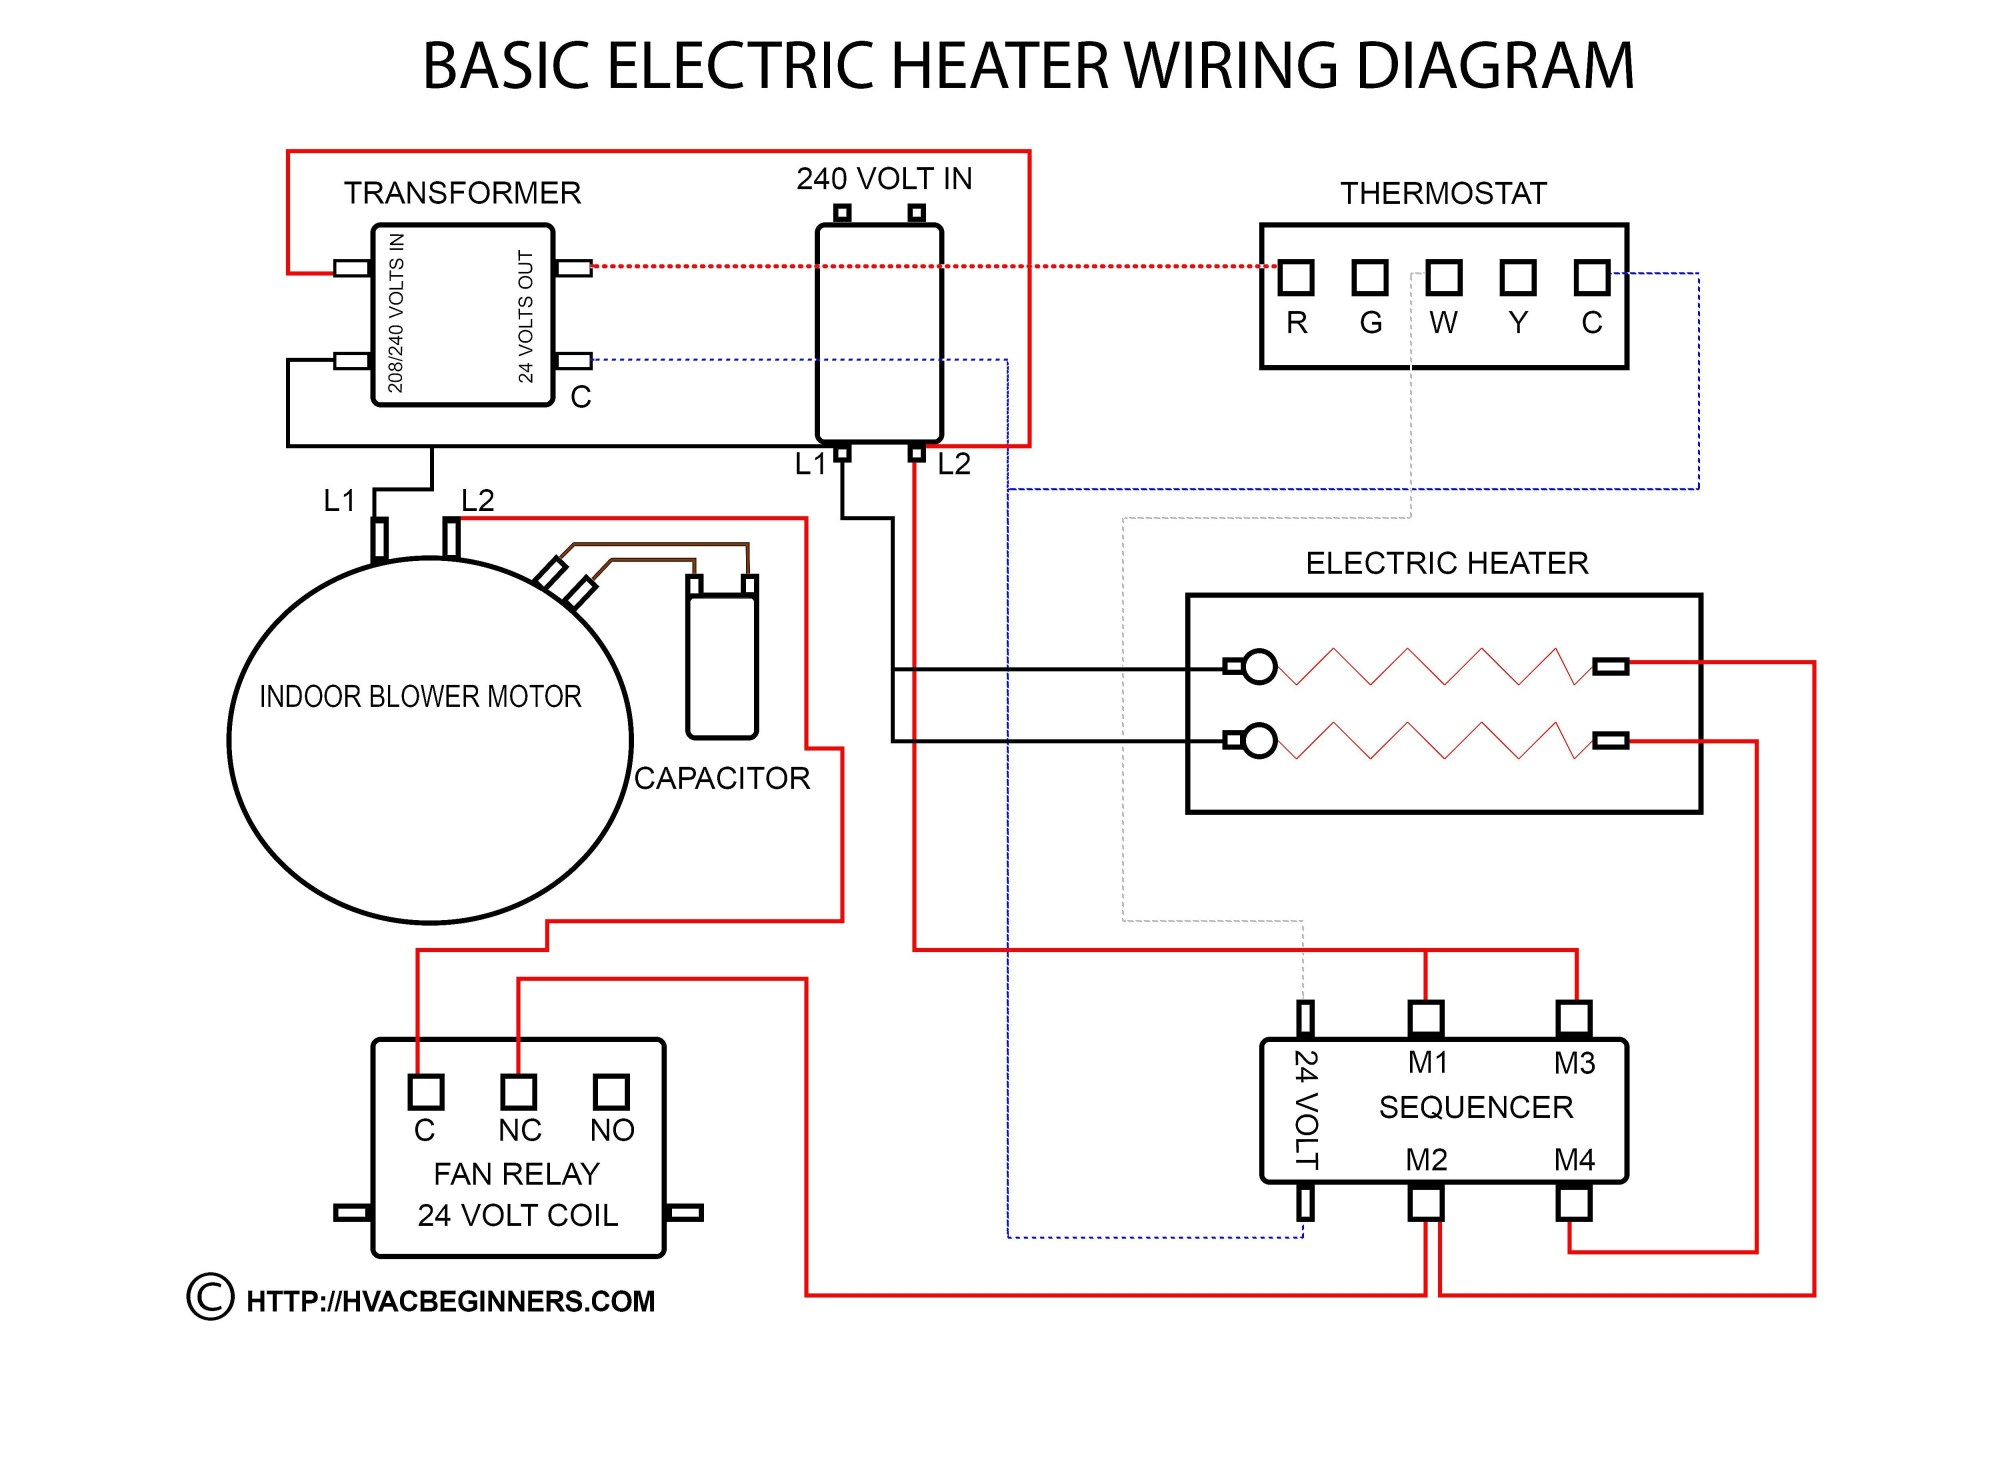 hight resolution of duncan oil furnace wiring diagram premium wiring diagram blog oil furnace wiring diagram oil burner wiring